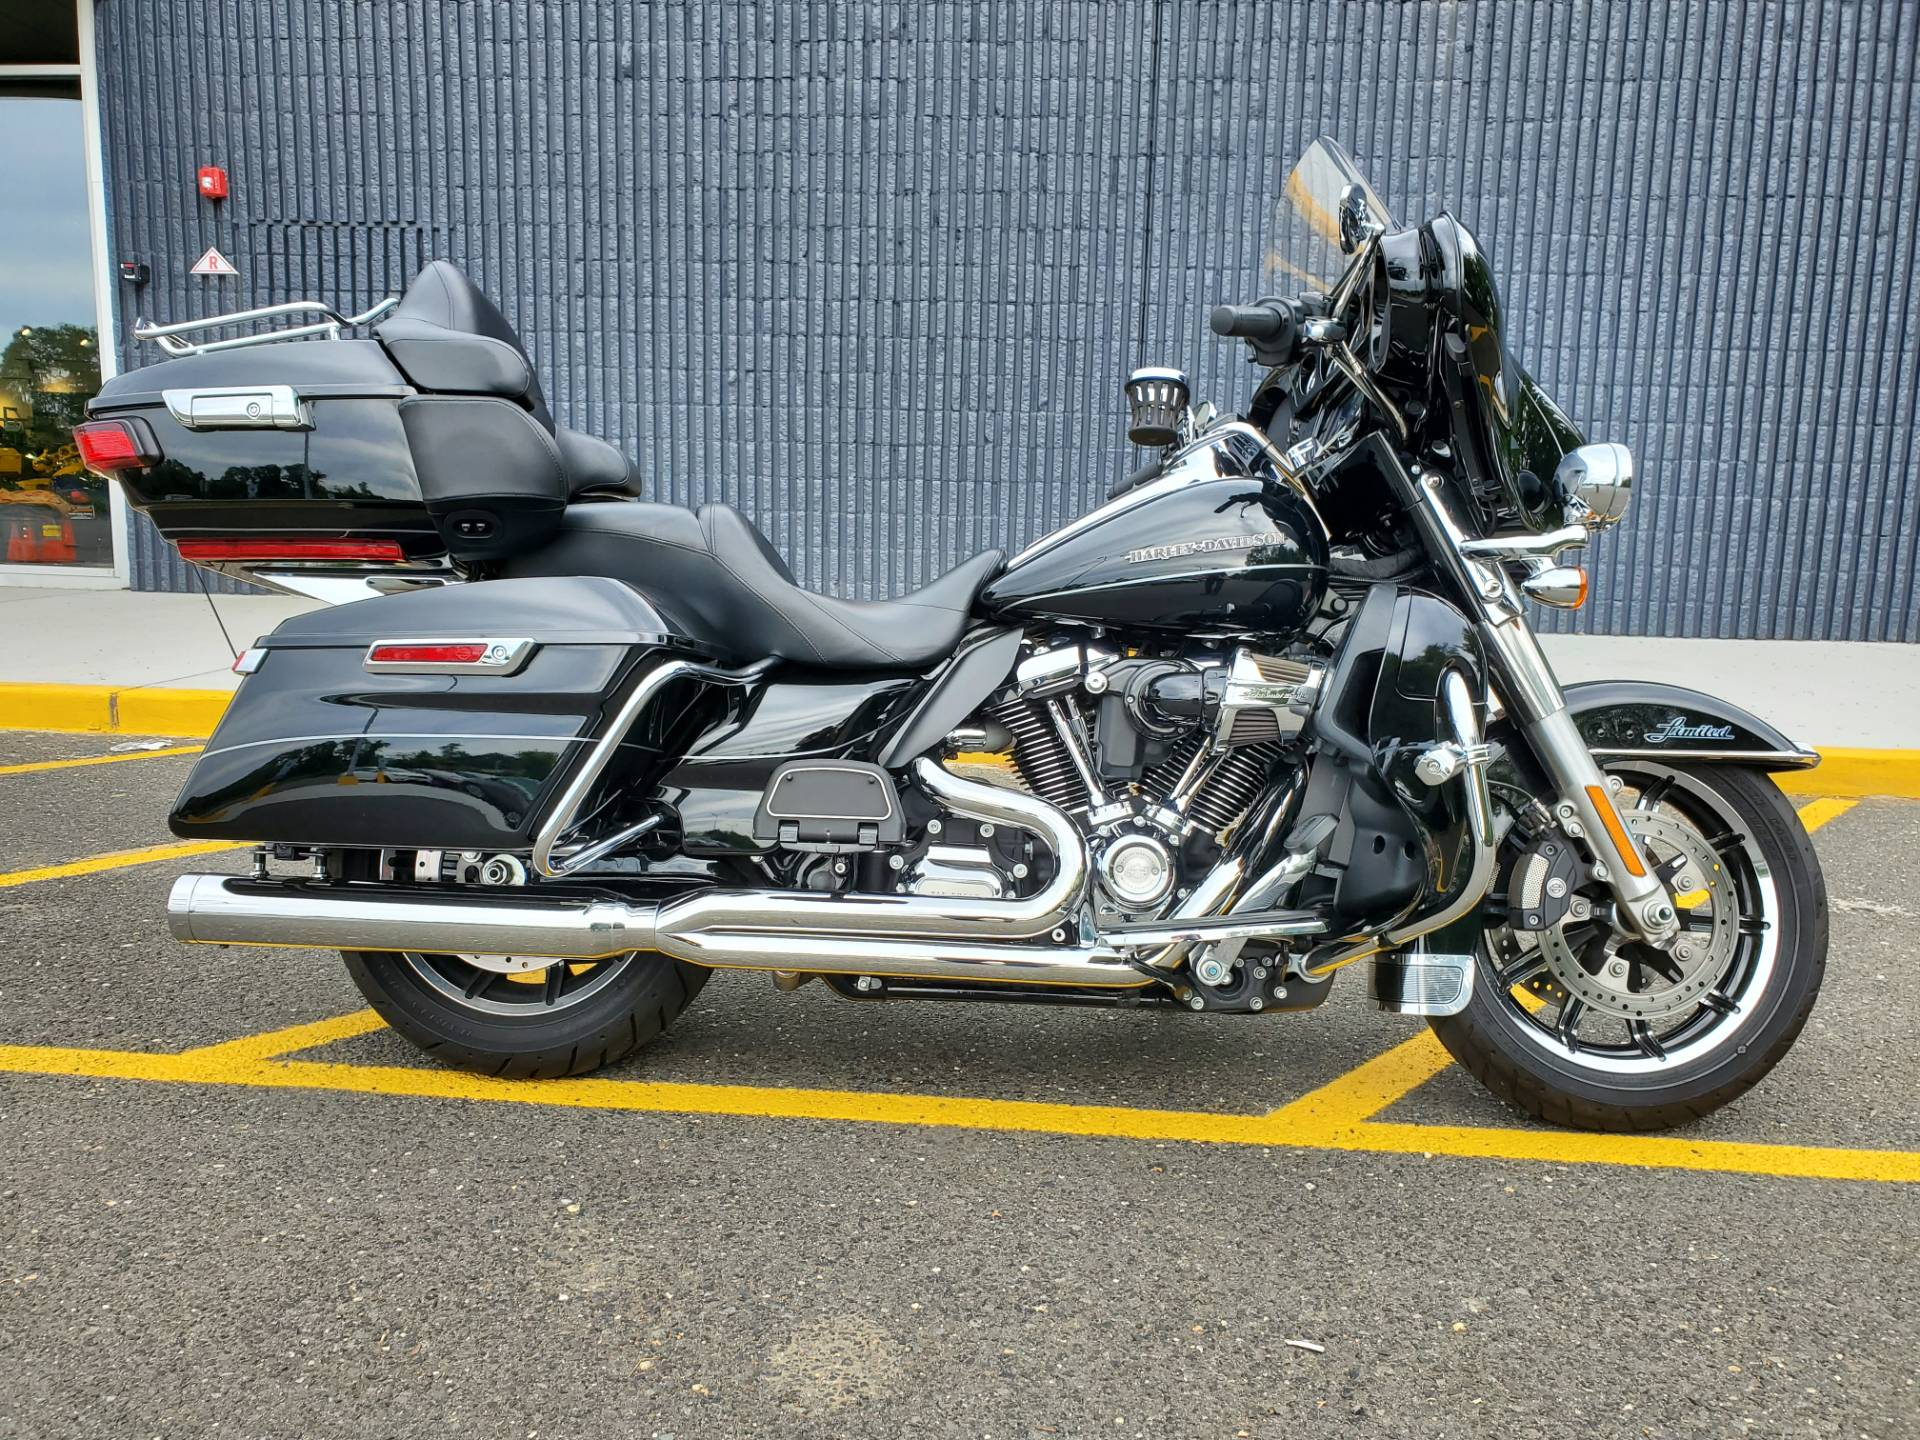 2017 Harley-Davidson Ultra Limited in West Long Branch, New Jersey - Photo 1